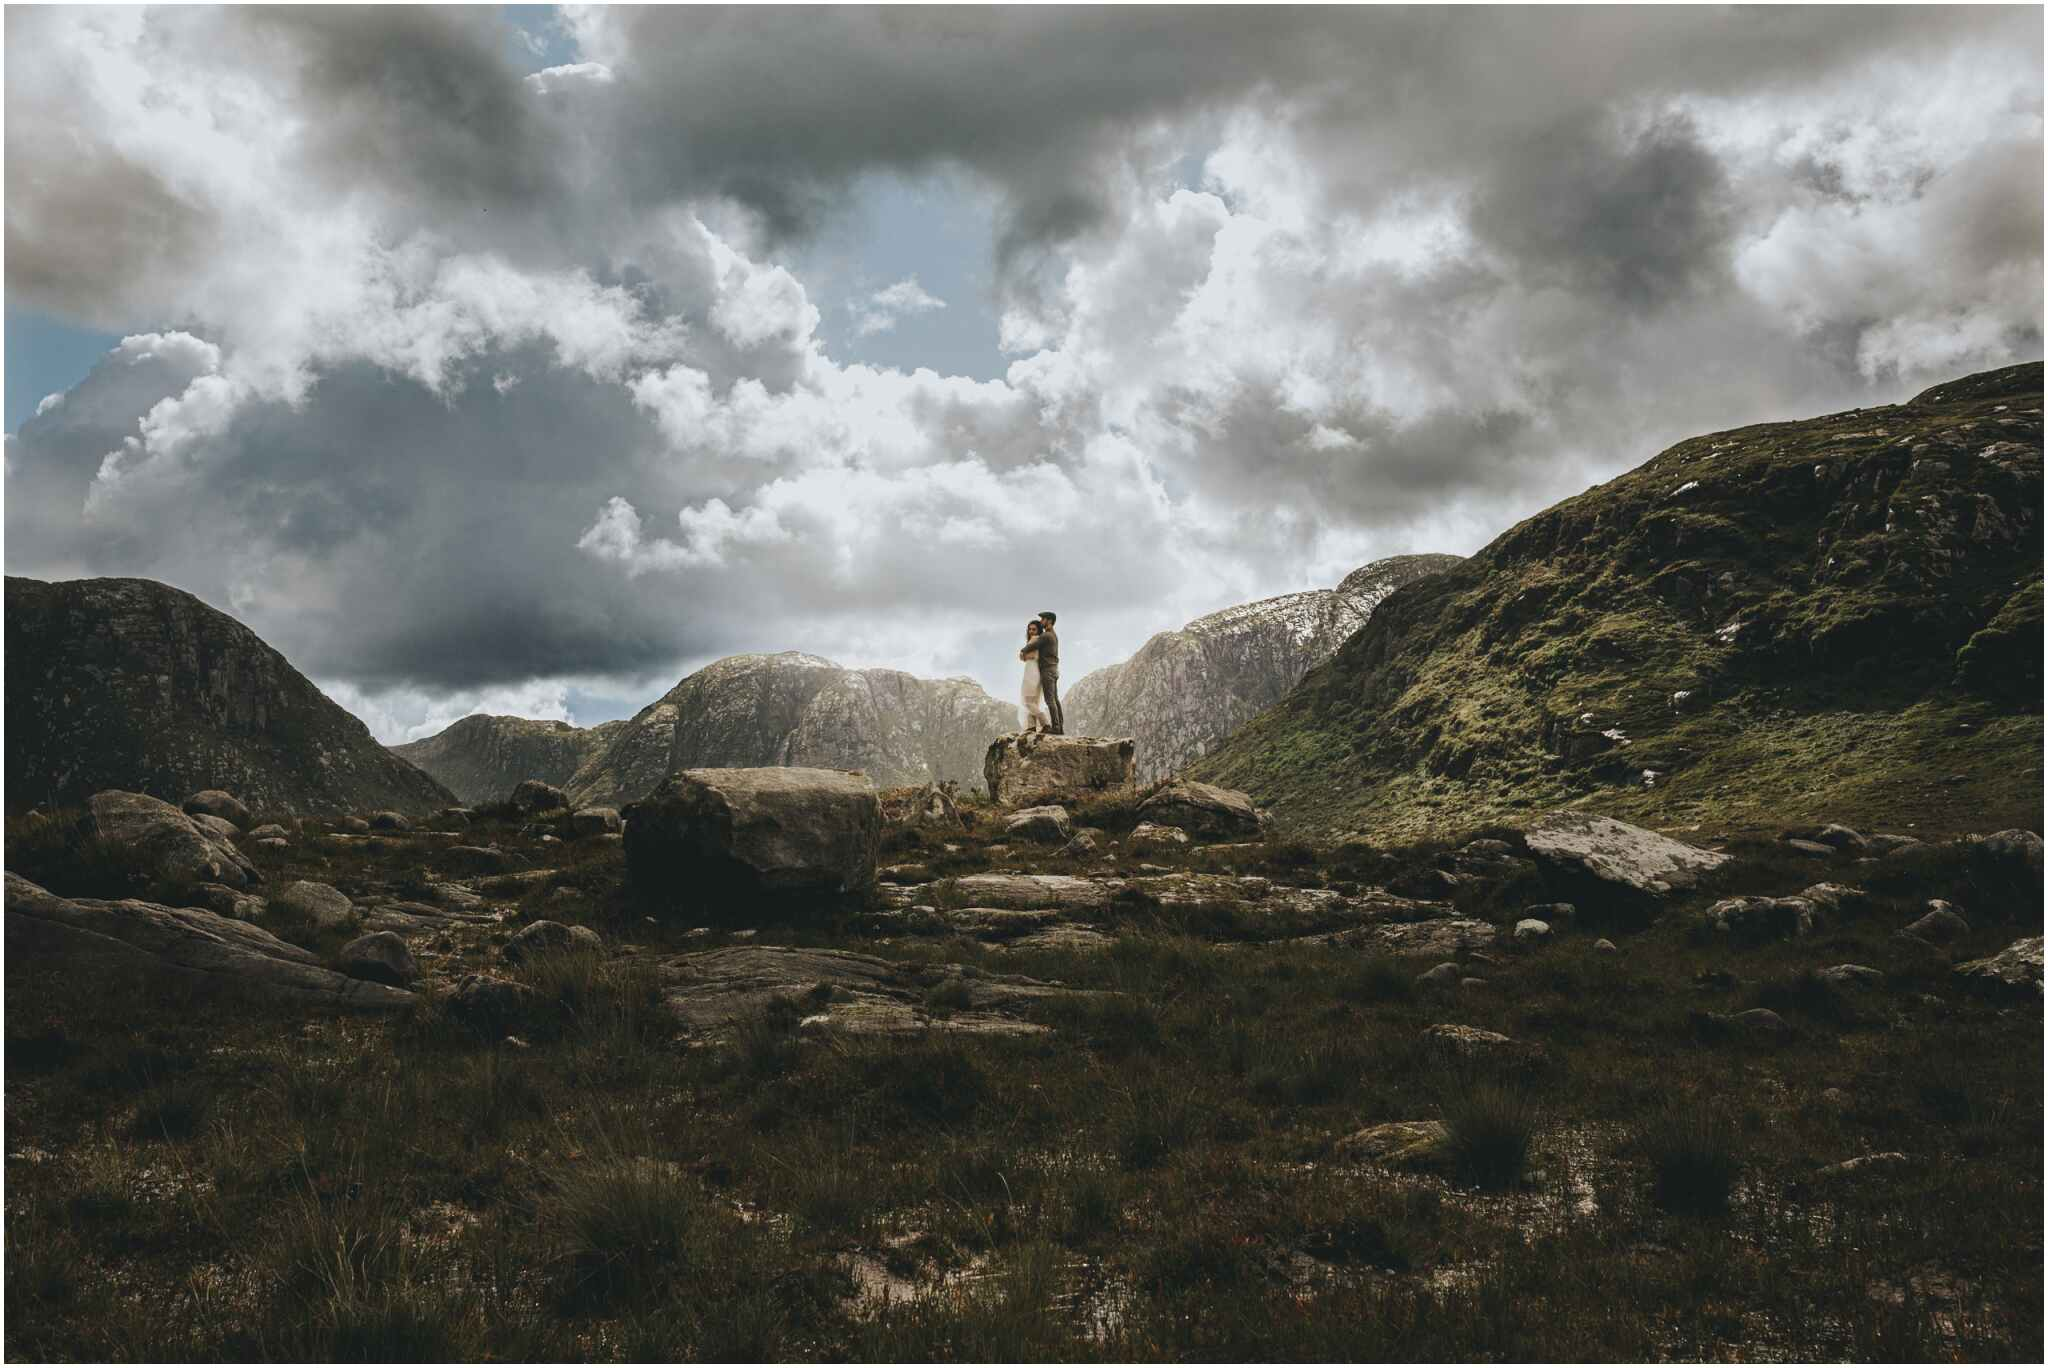 Rachel + David - Hiking Elopement in Muckish Mountain and Poisoned Glen, Donegal 32